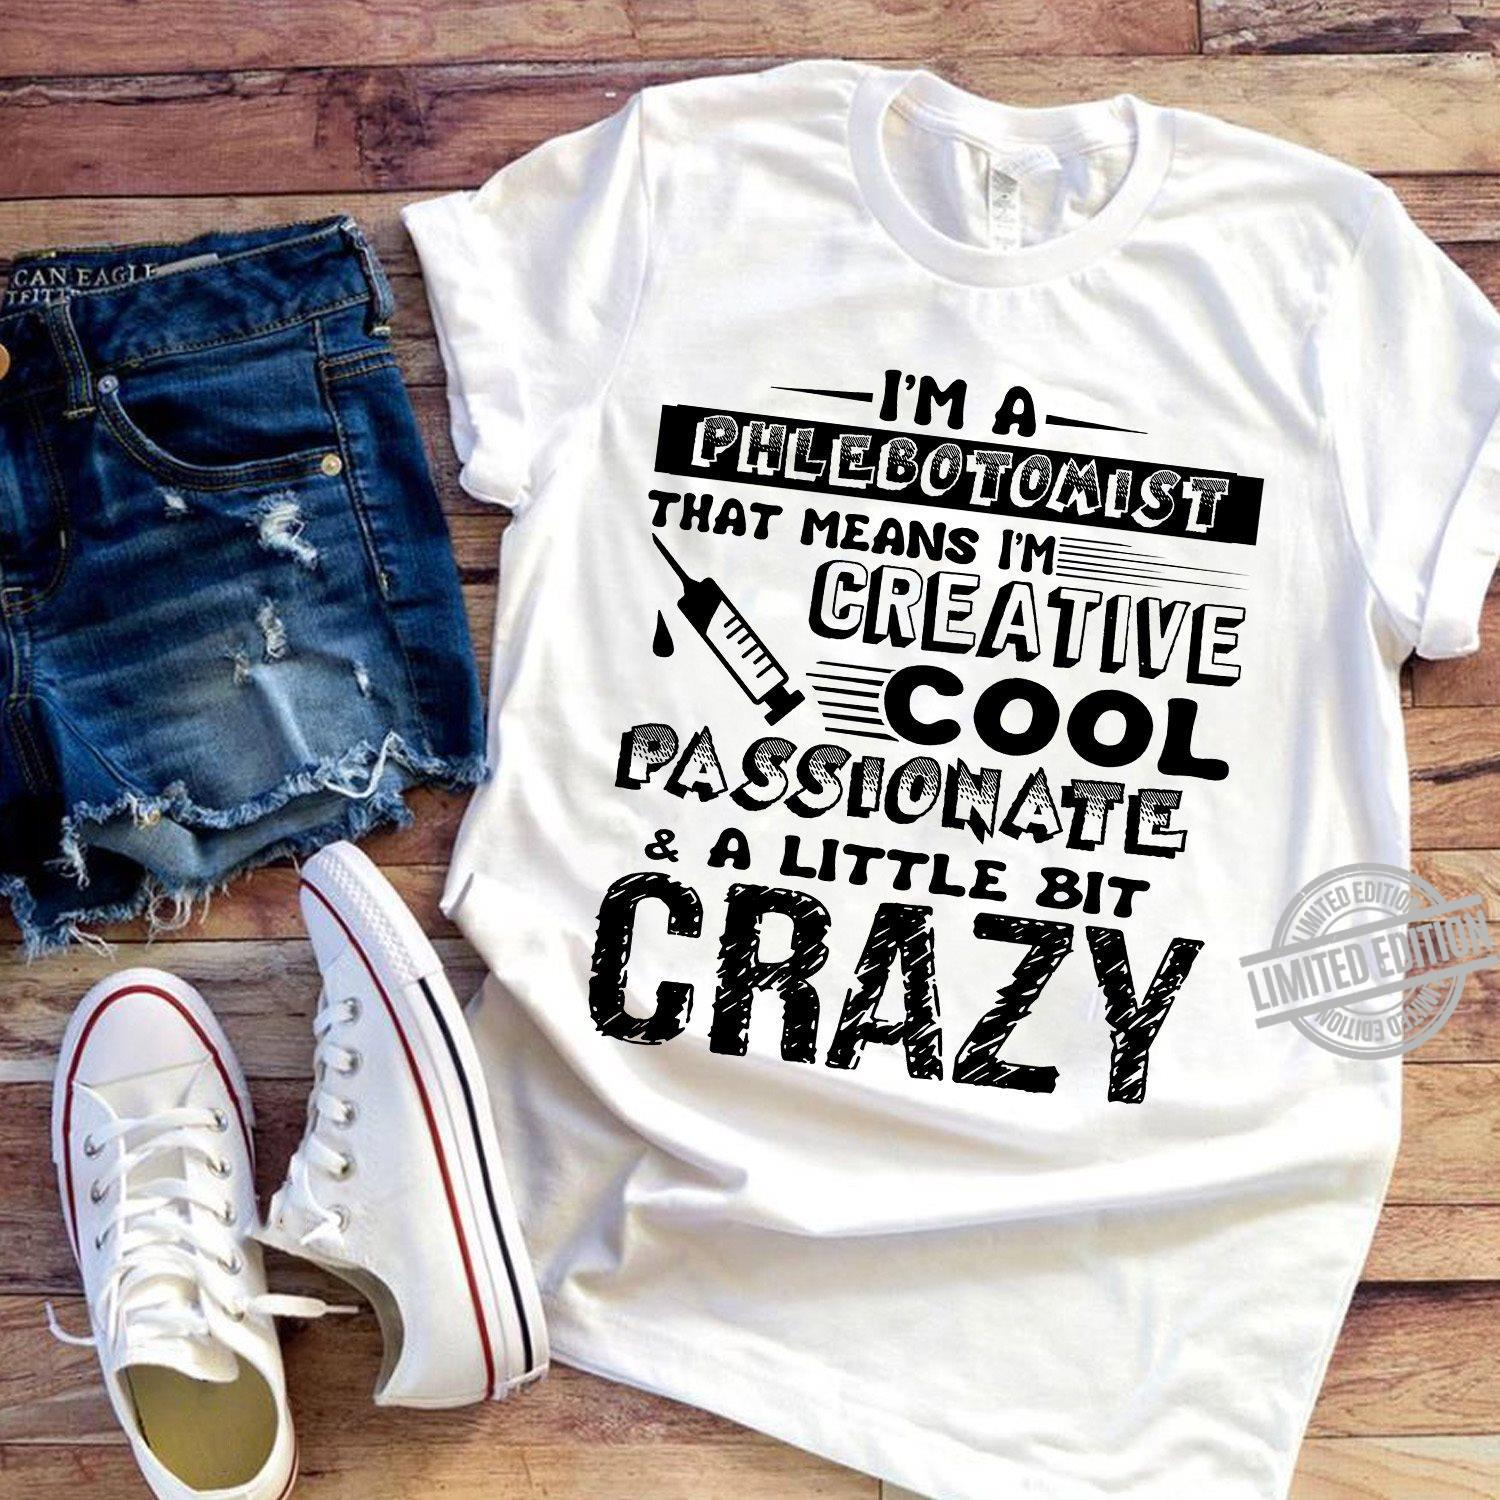 I'm A Phlebotomist That Means I'm Creative Cool Passionate A Little Bit Crazy Shirt